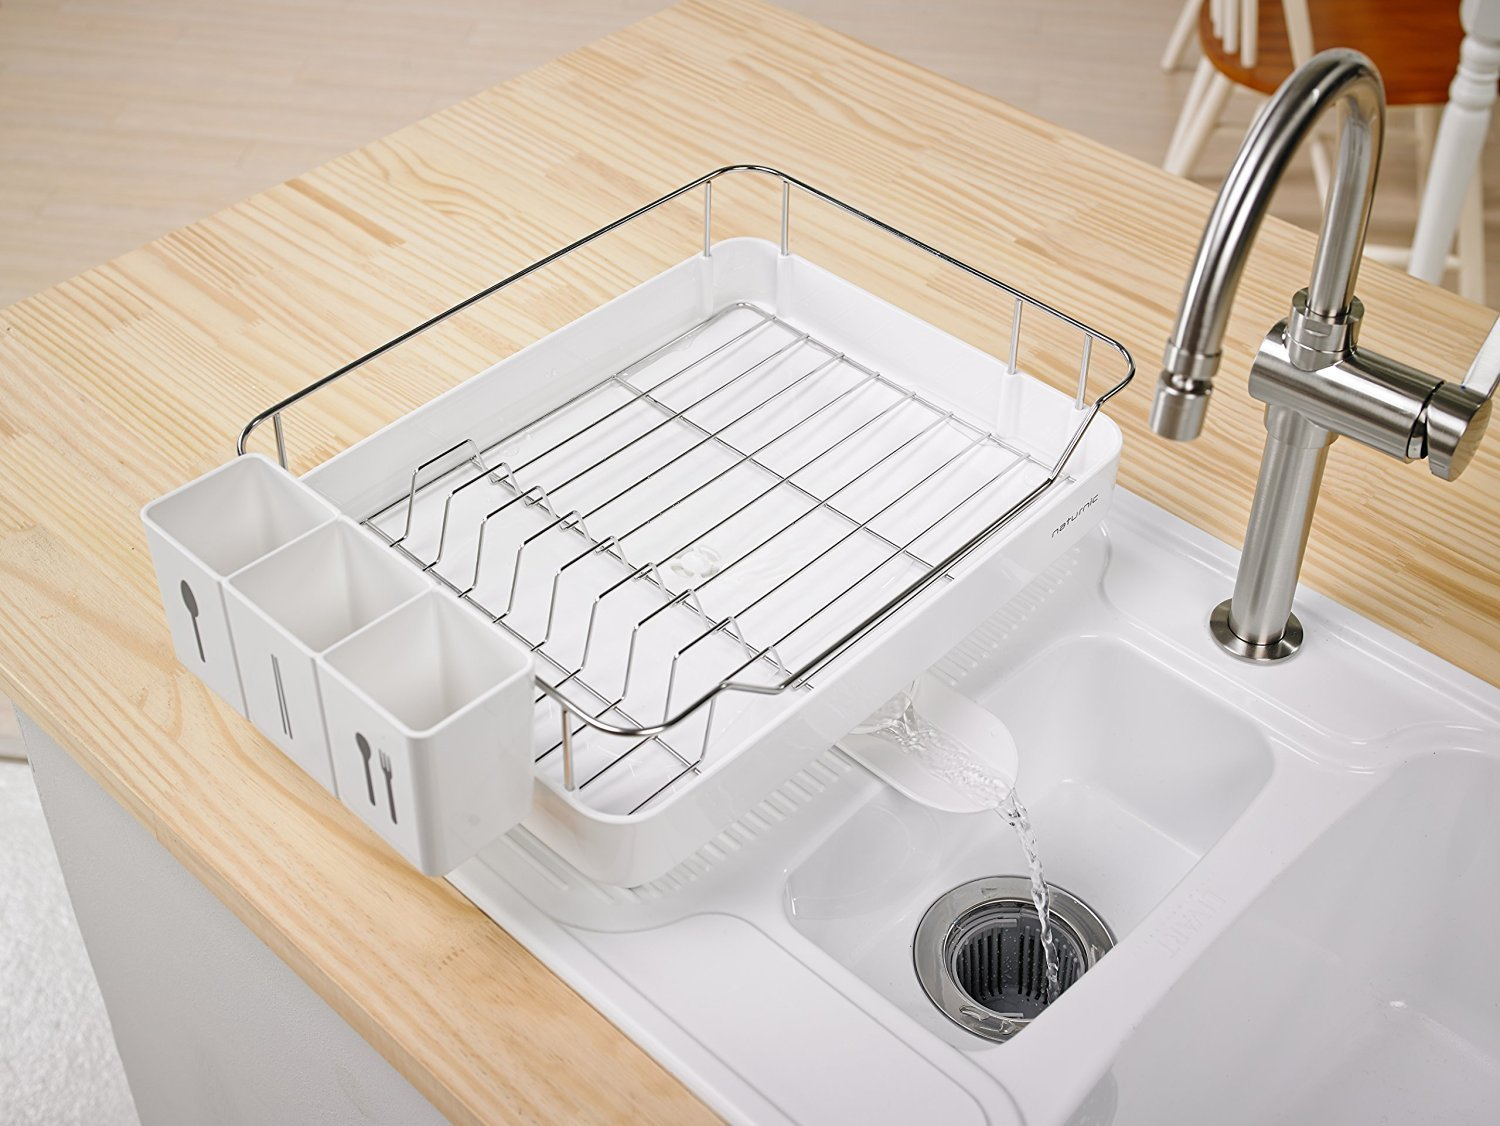 Kitchen Dish Rack Amazoncom Simple Kitchen Sinkware Dish Rack Dish Drying Rack